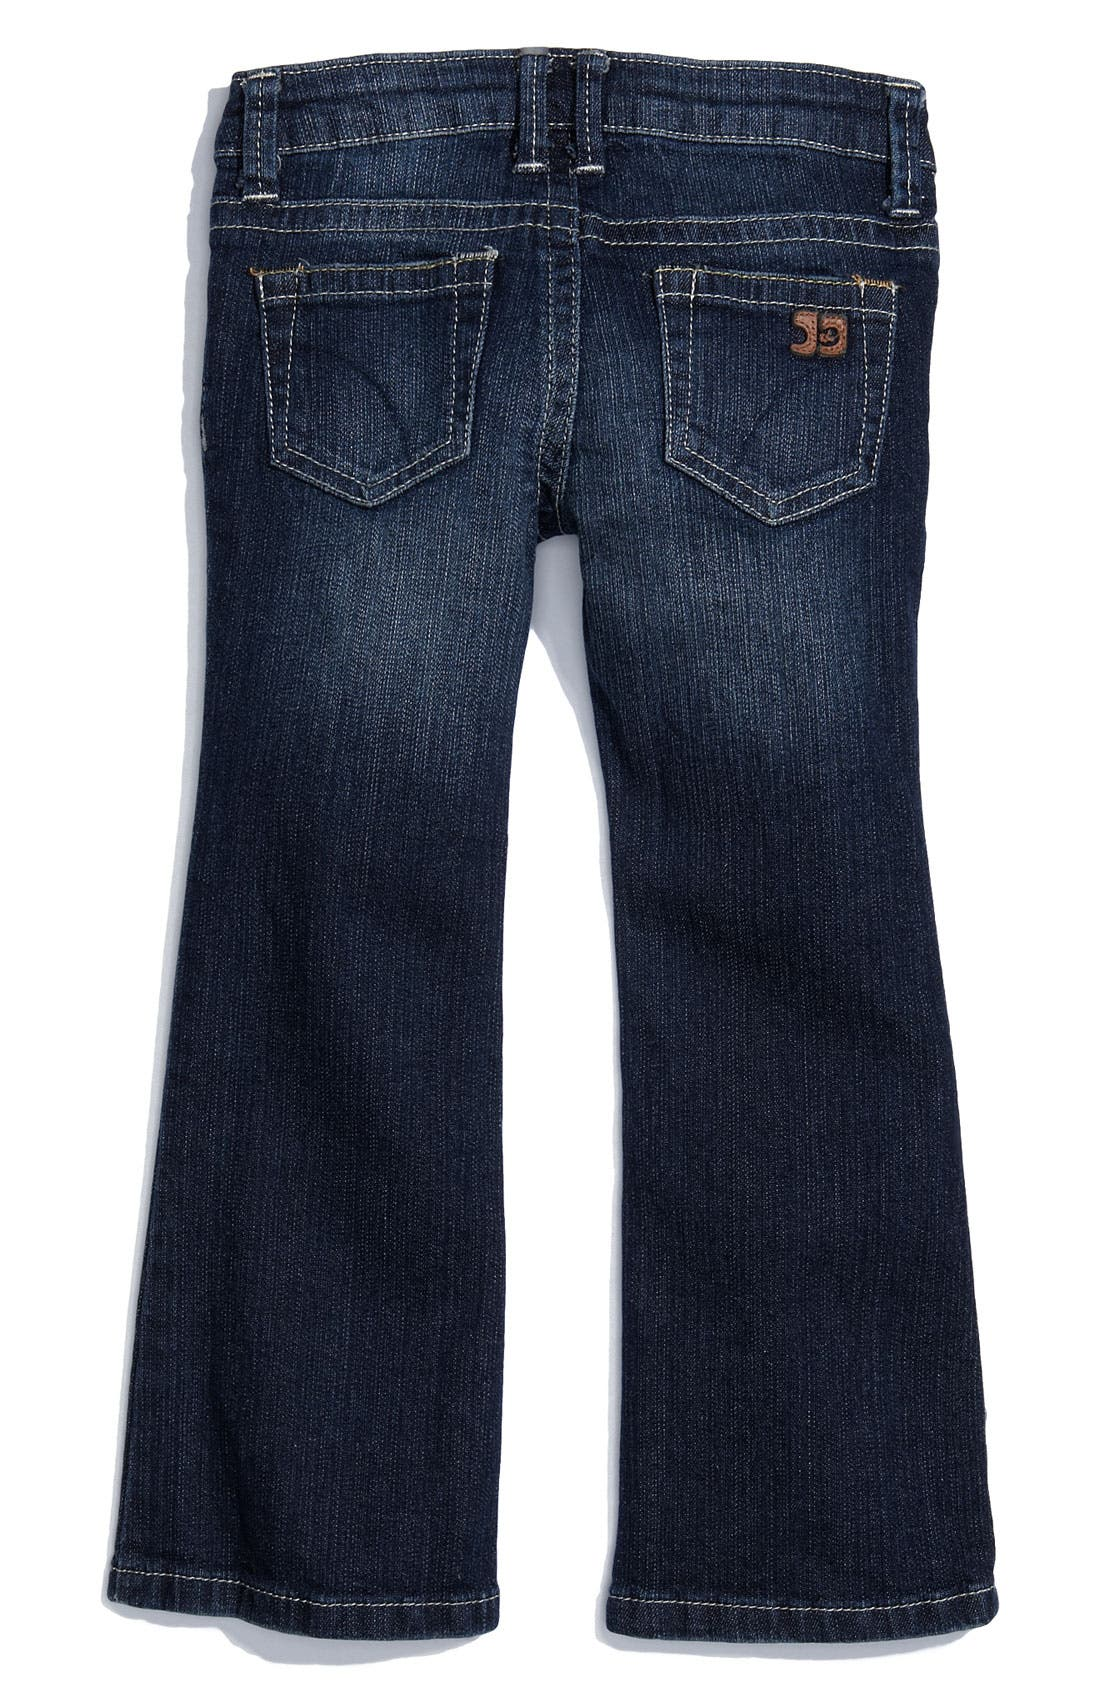 'The Bell' Jeans,                             Main thumbnail 1, color,                             478